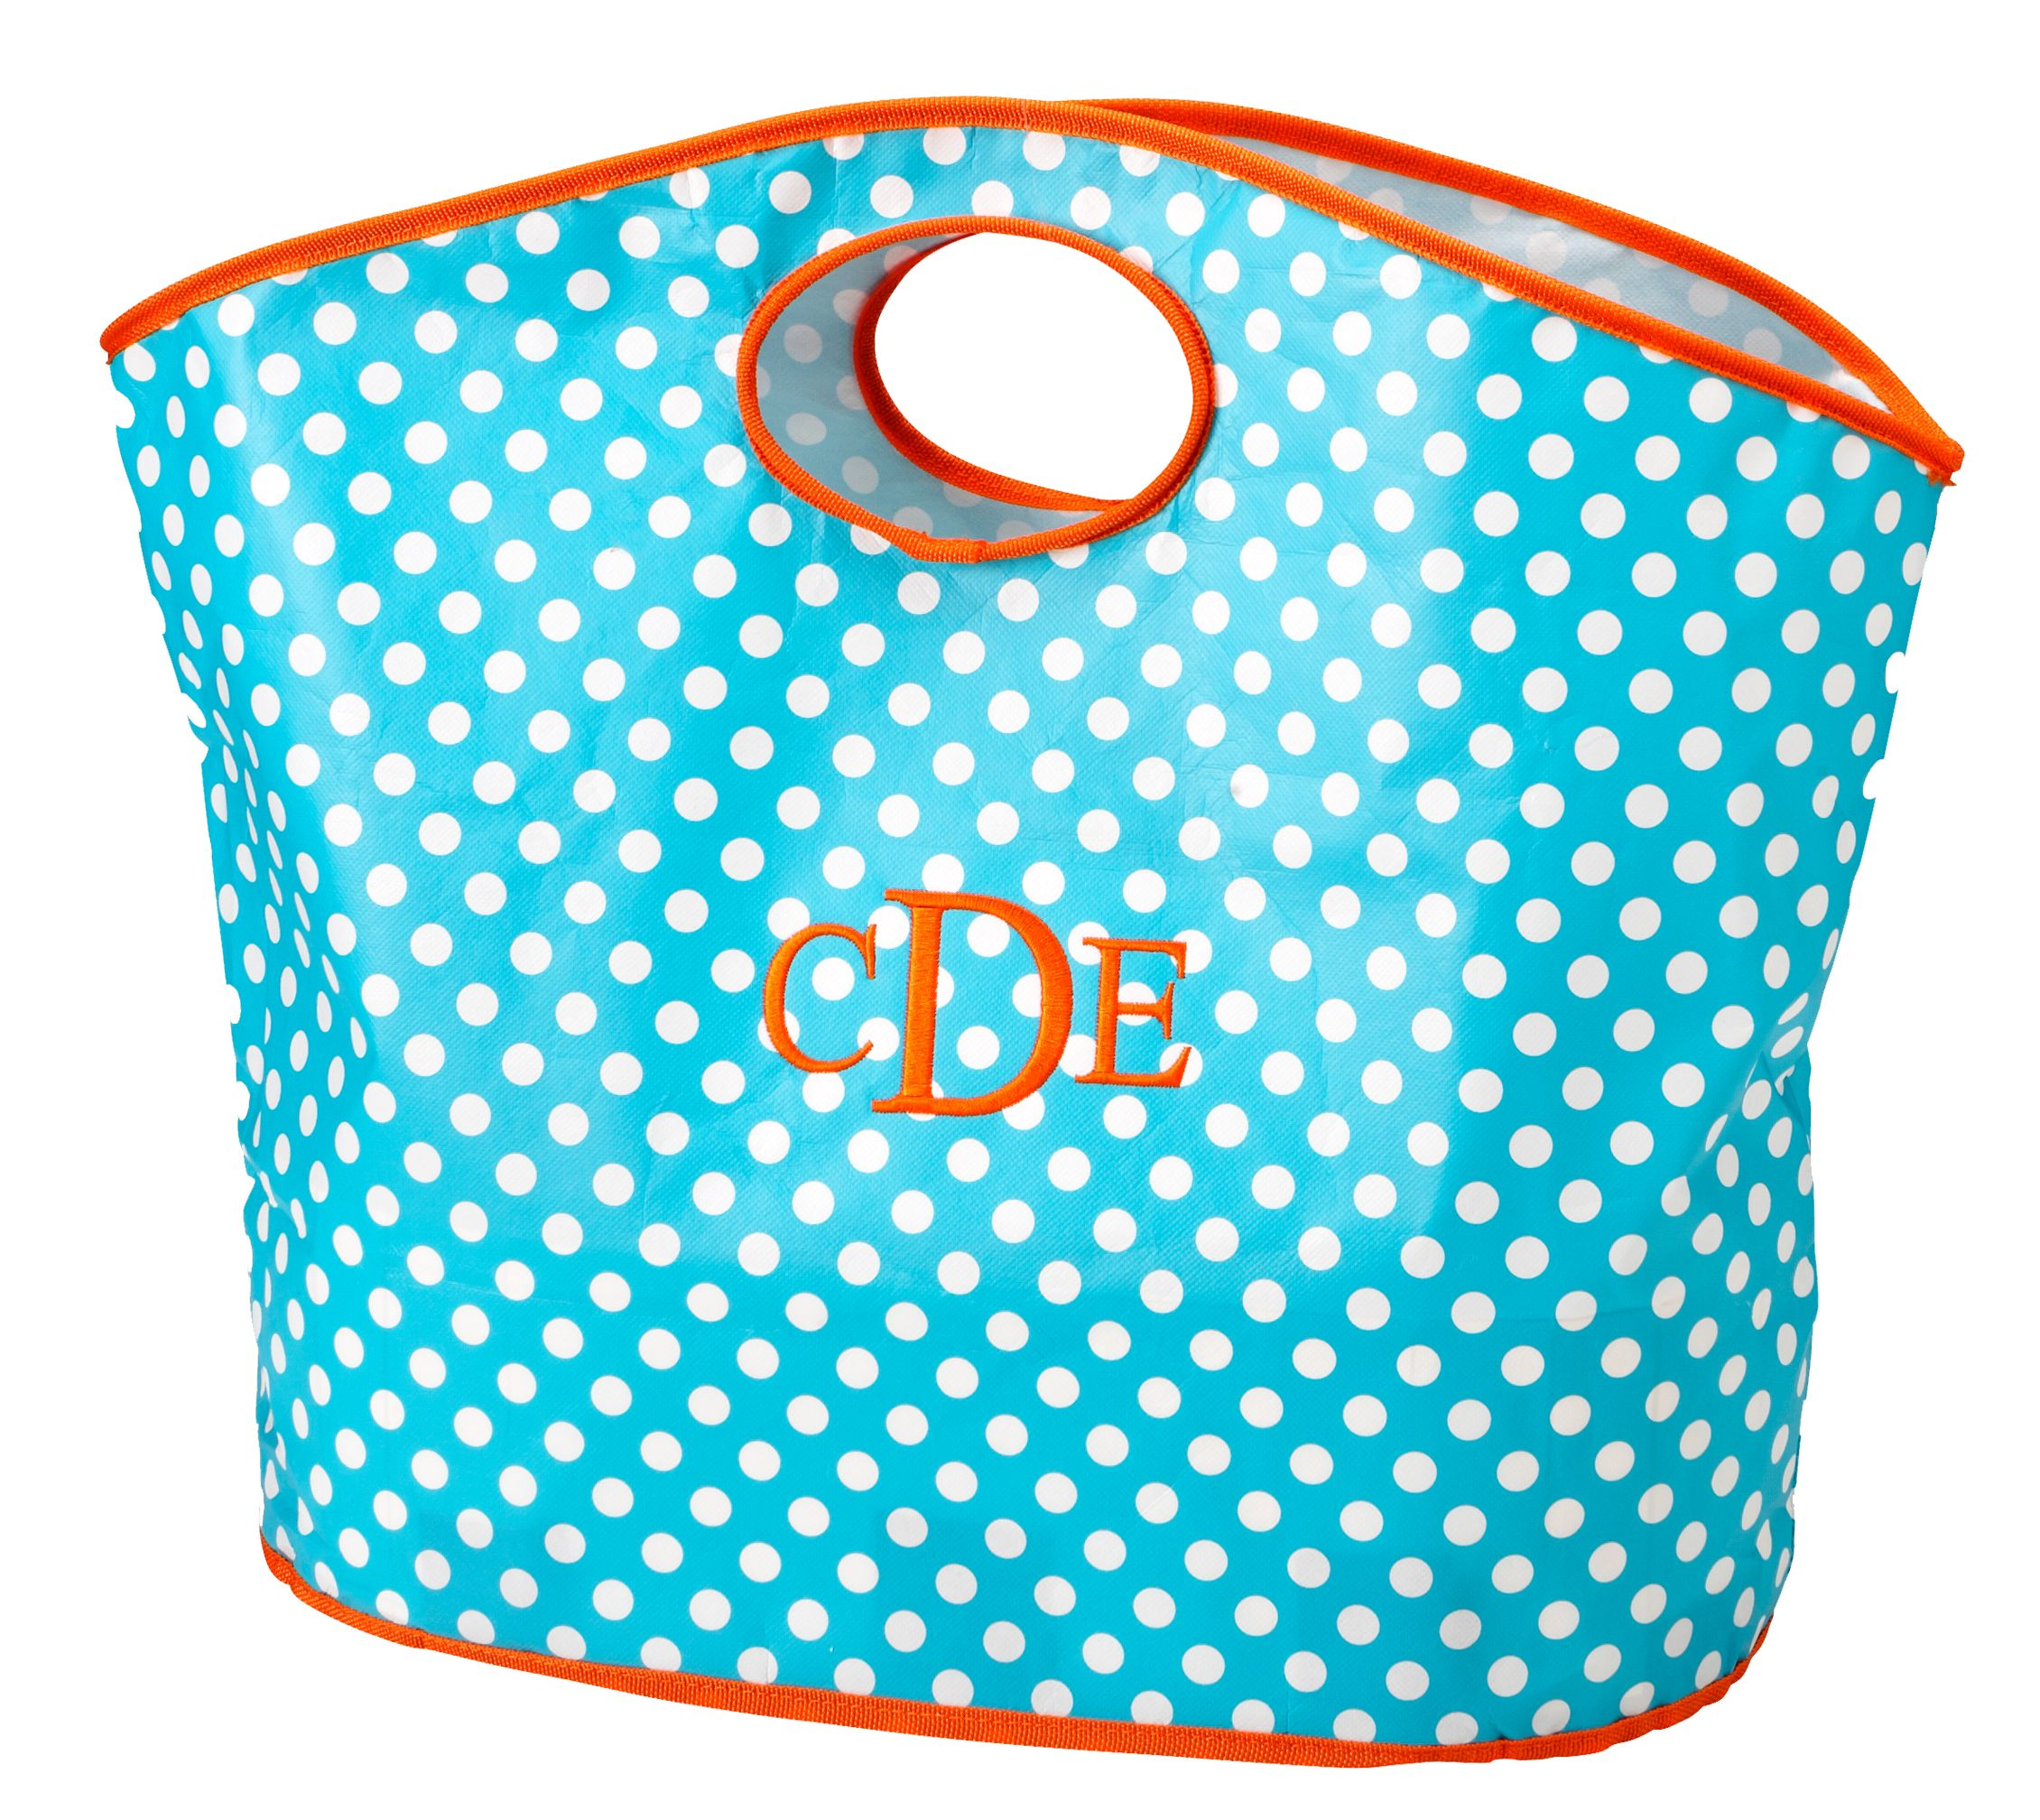 Fun Tote great bag to carry just what you need. Comes in red chevron, black chevron, pink polka dots. Magnolialace.net